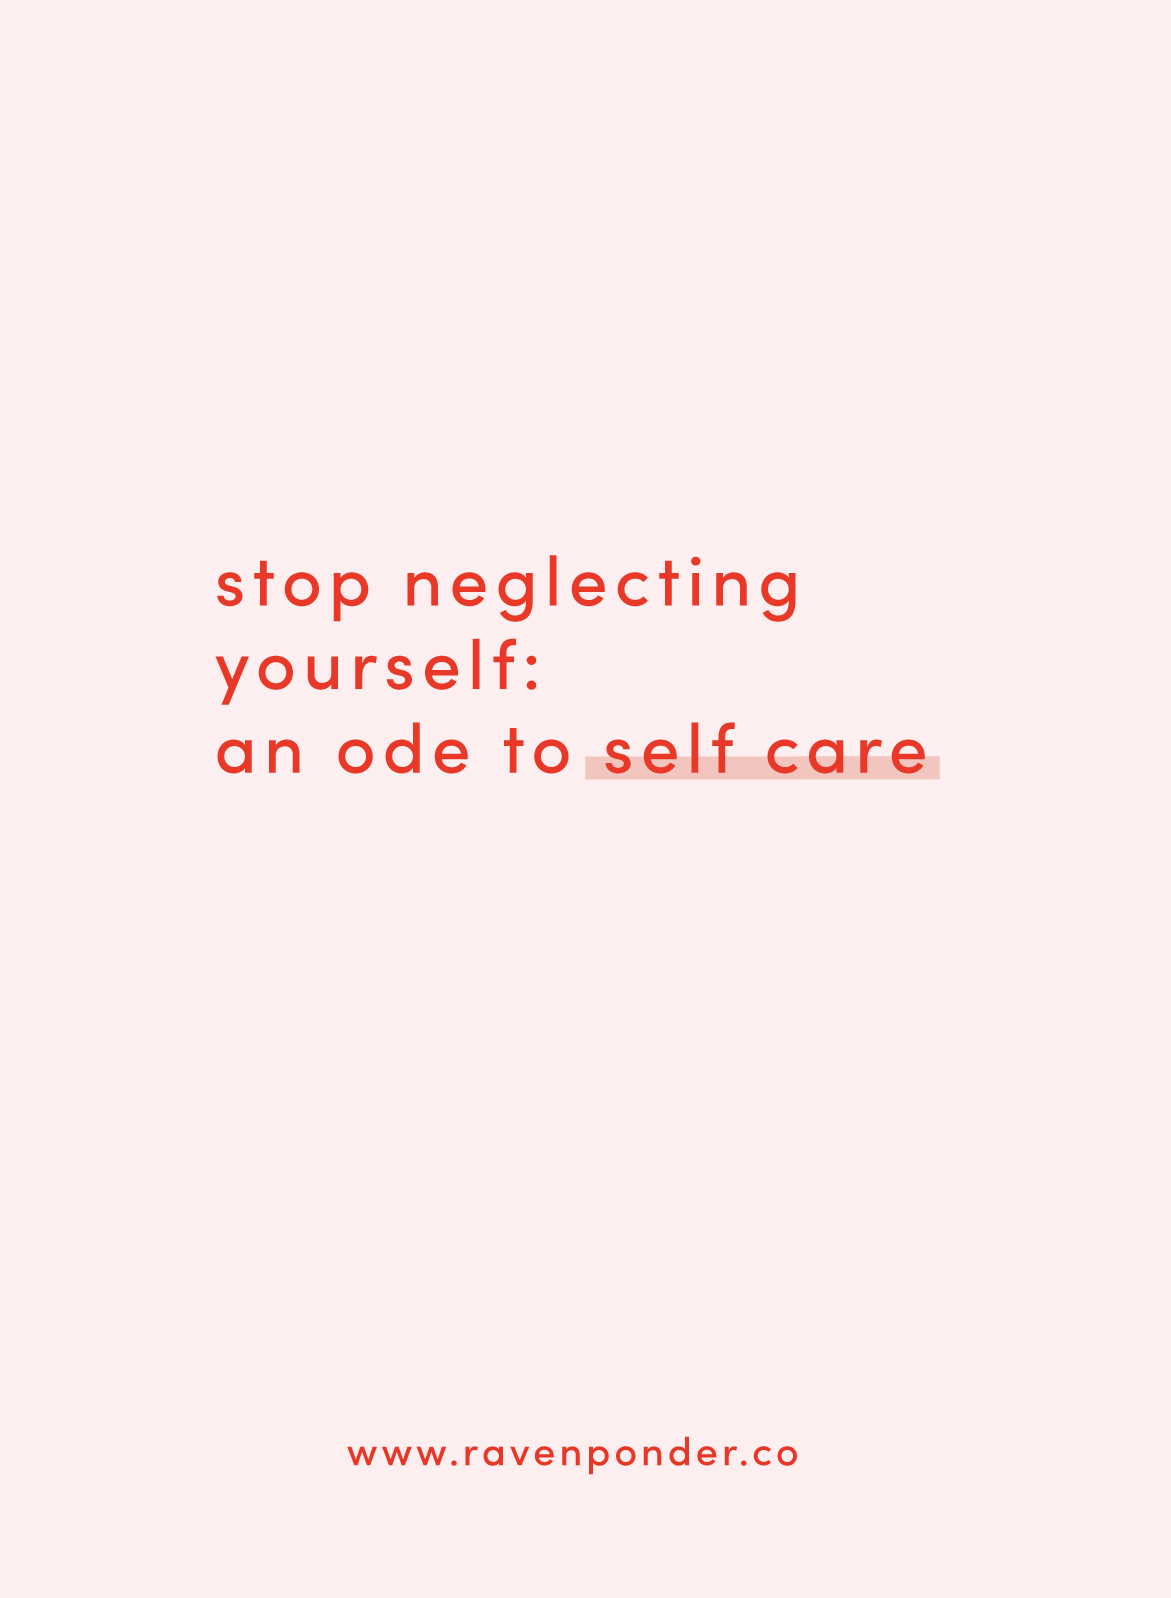 ode+to+self-care-03.png